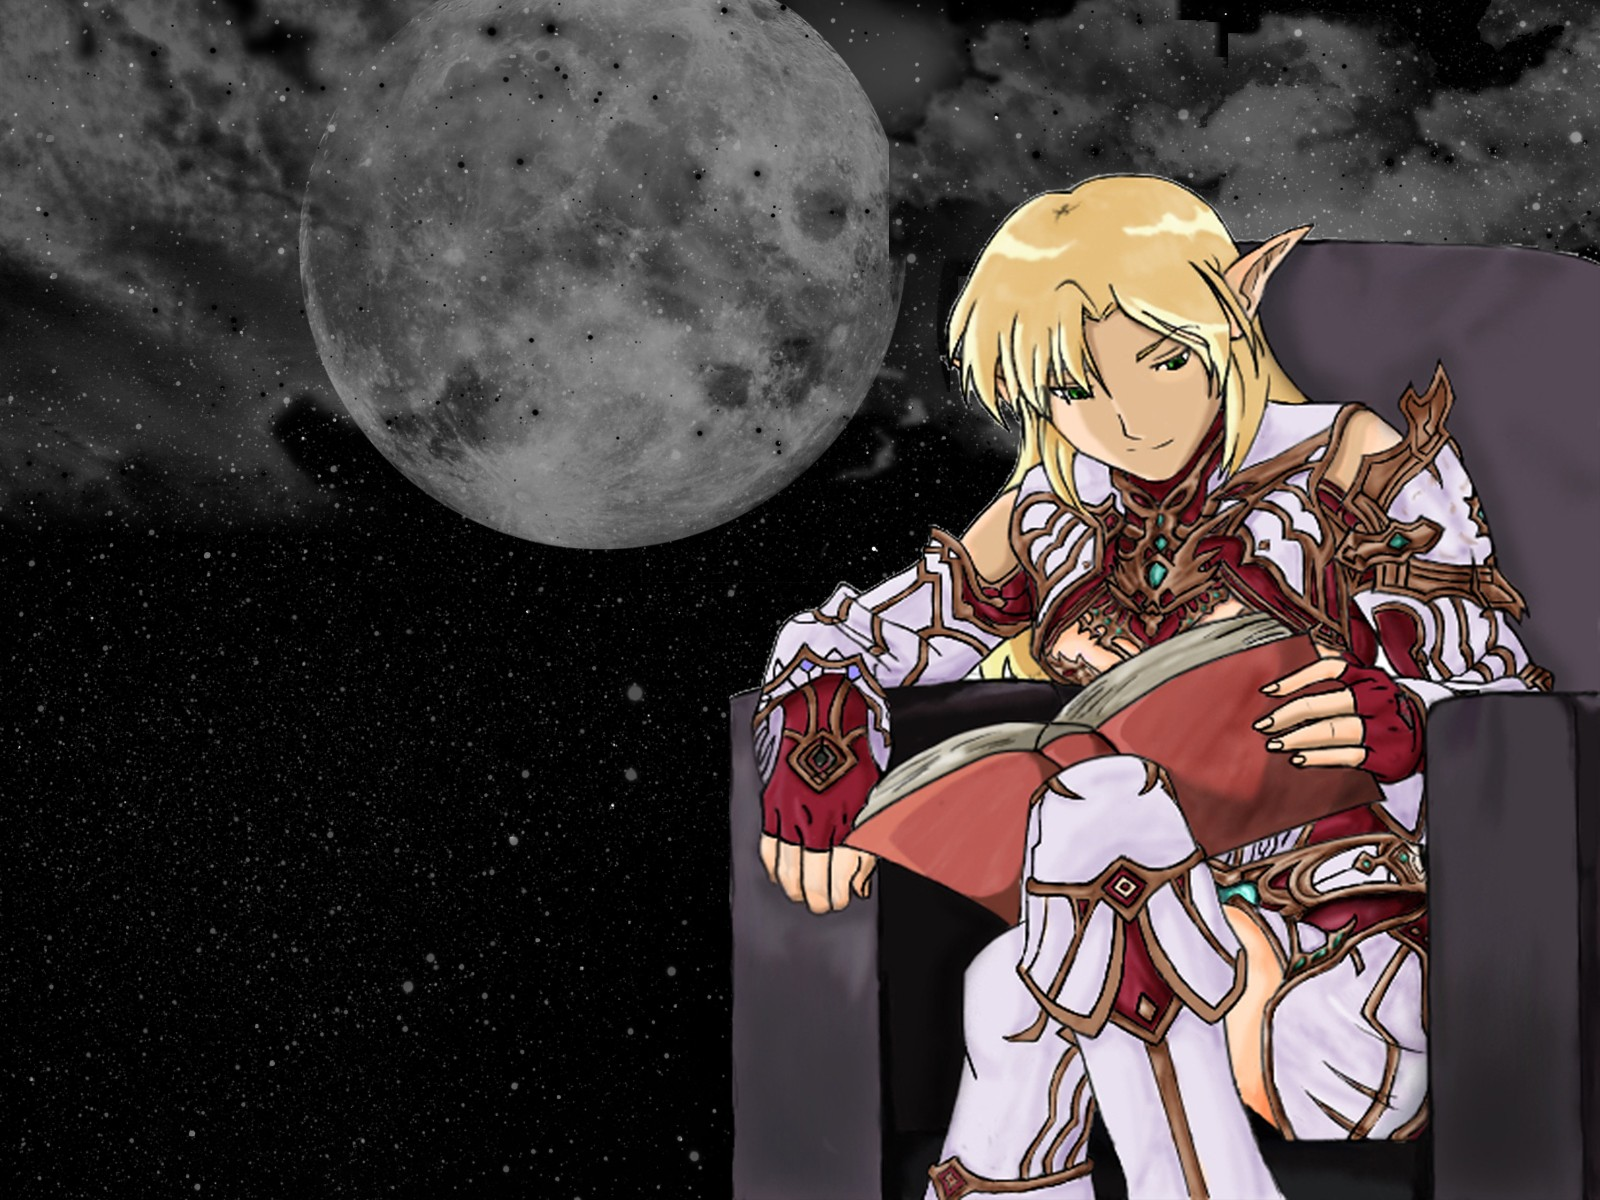 moon reading elves lineage HD Wallpaper